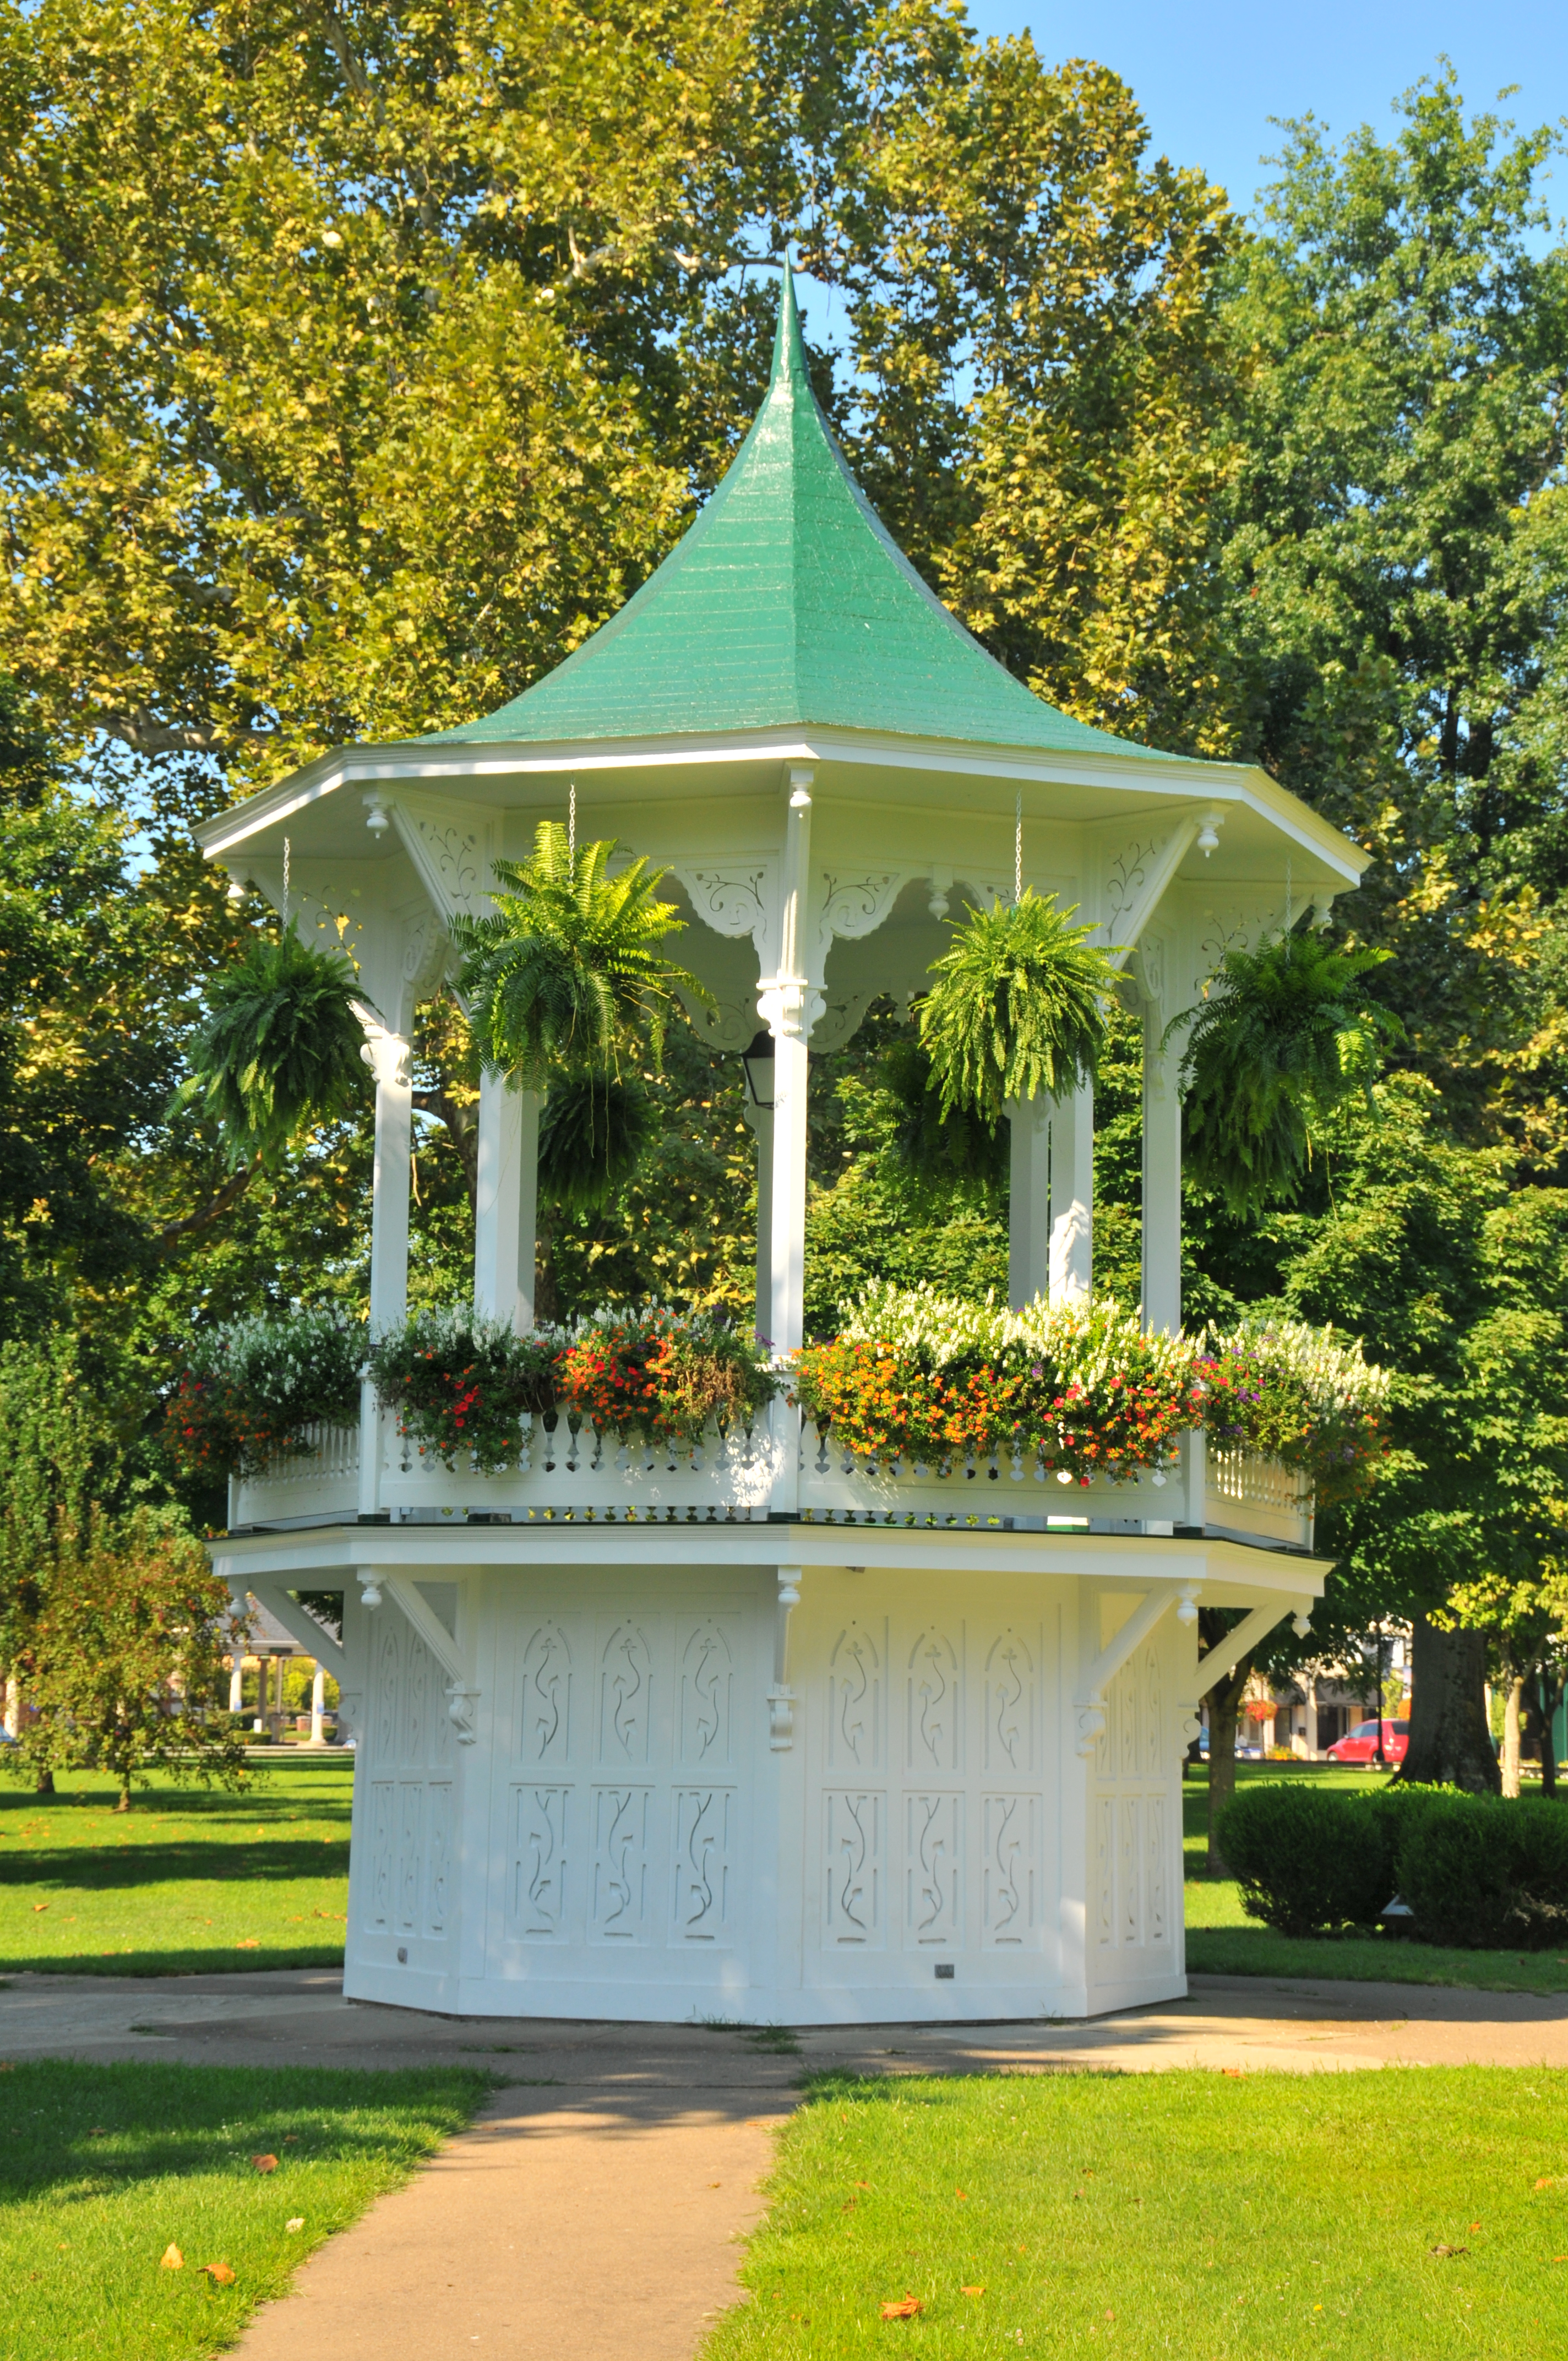 This bandstand was constructed in 1876 as a memorial to Gallia County Civil War veterans.